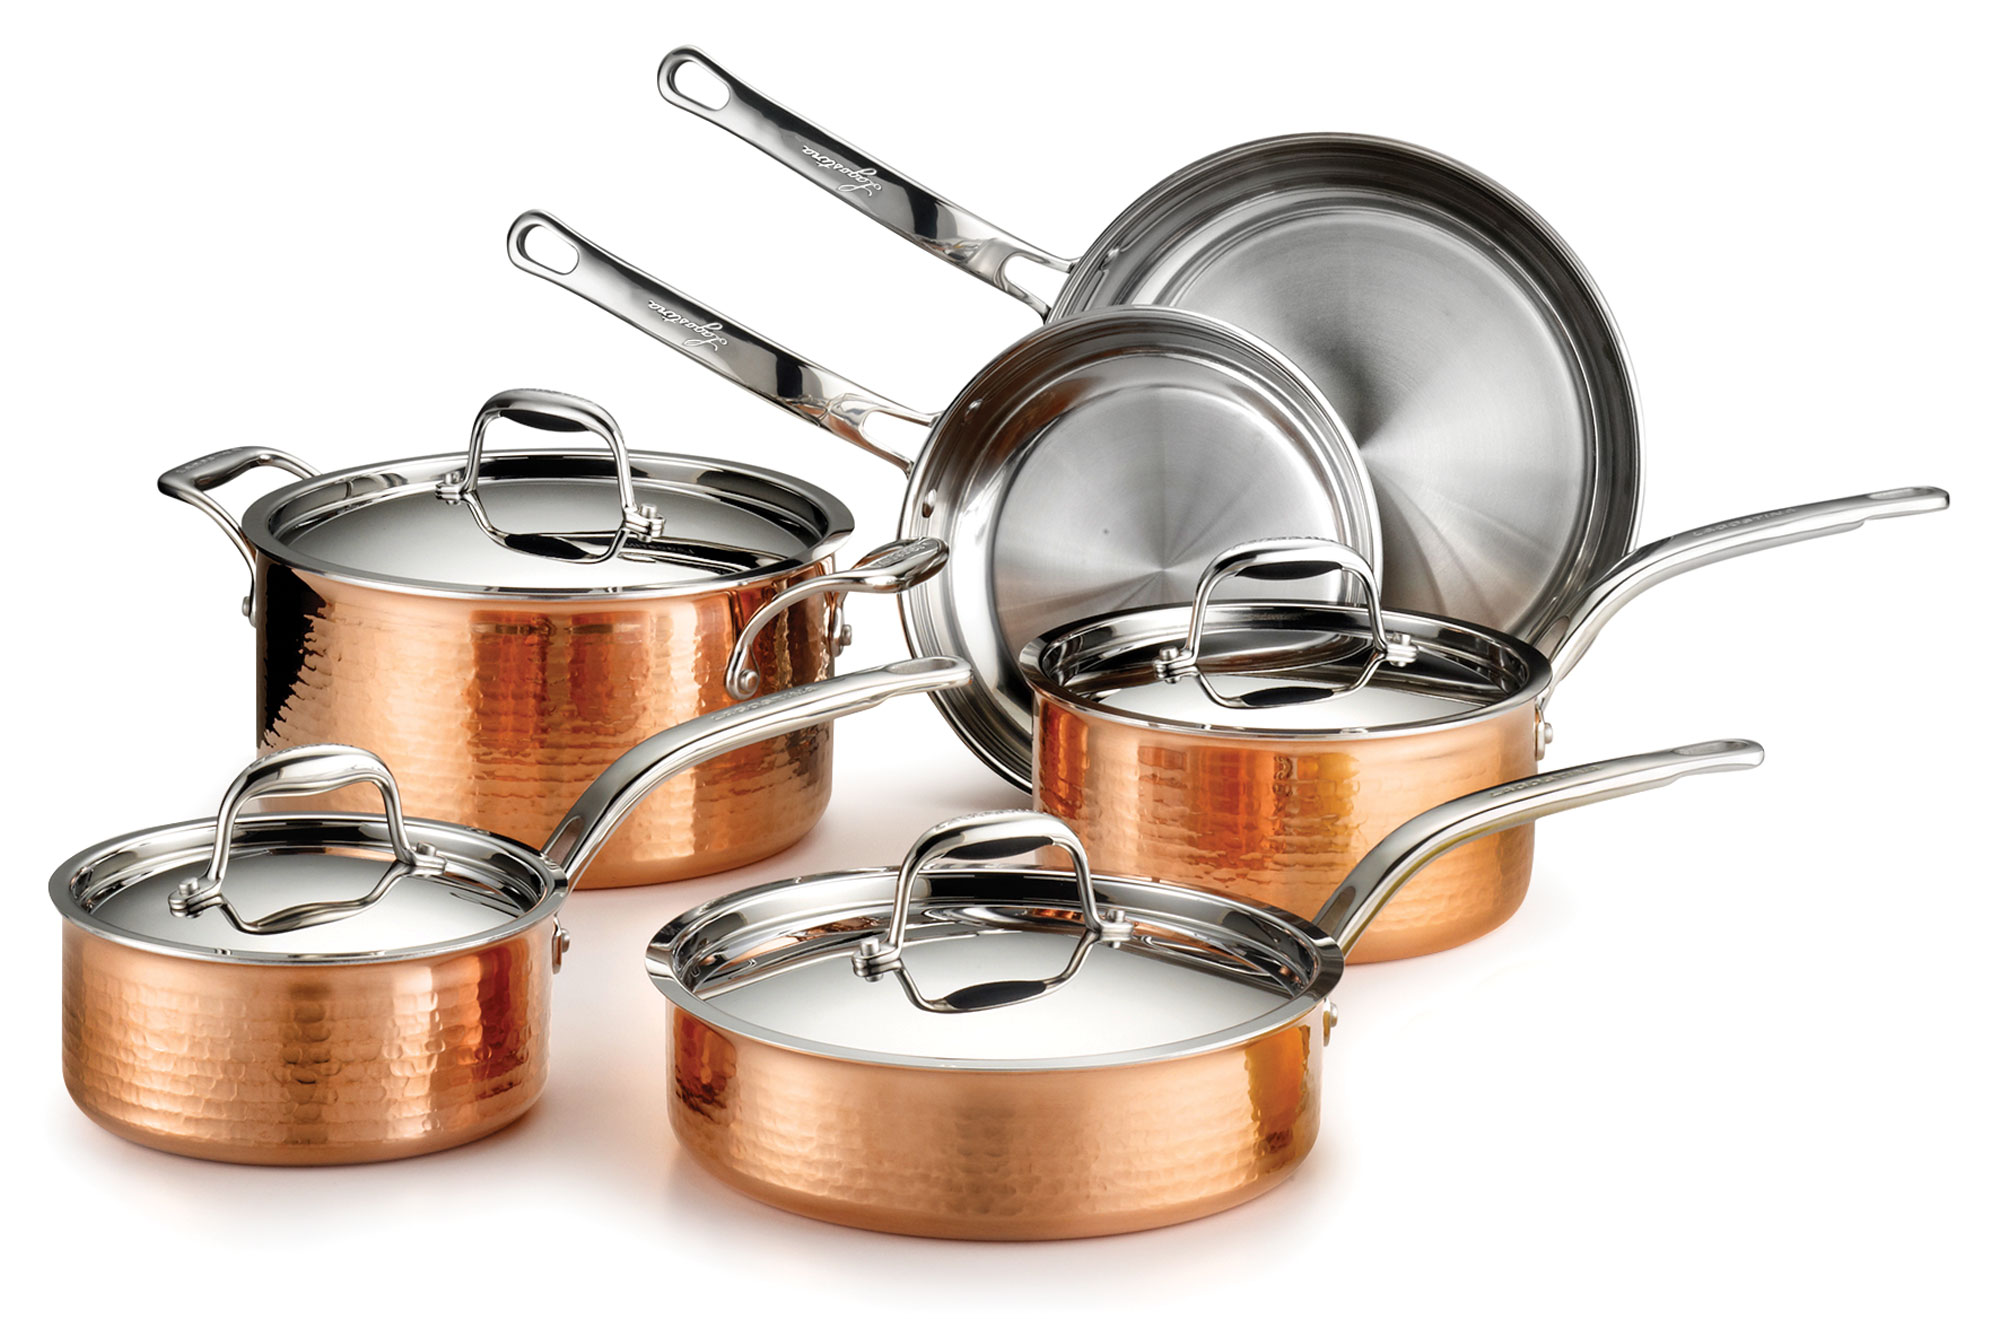 Lagostina Copper Cookware Set Martellata Hammered Tri Ply